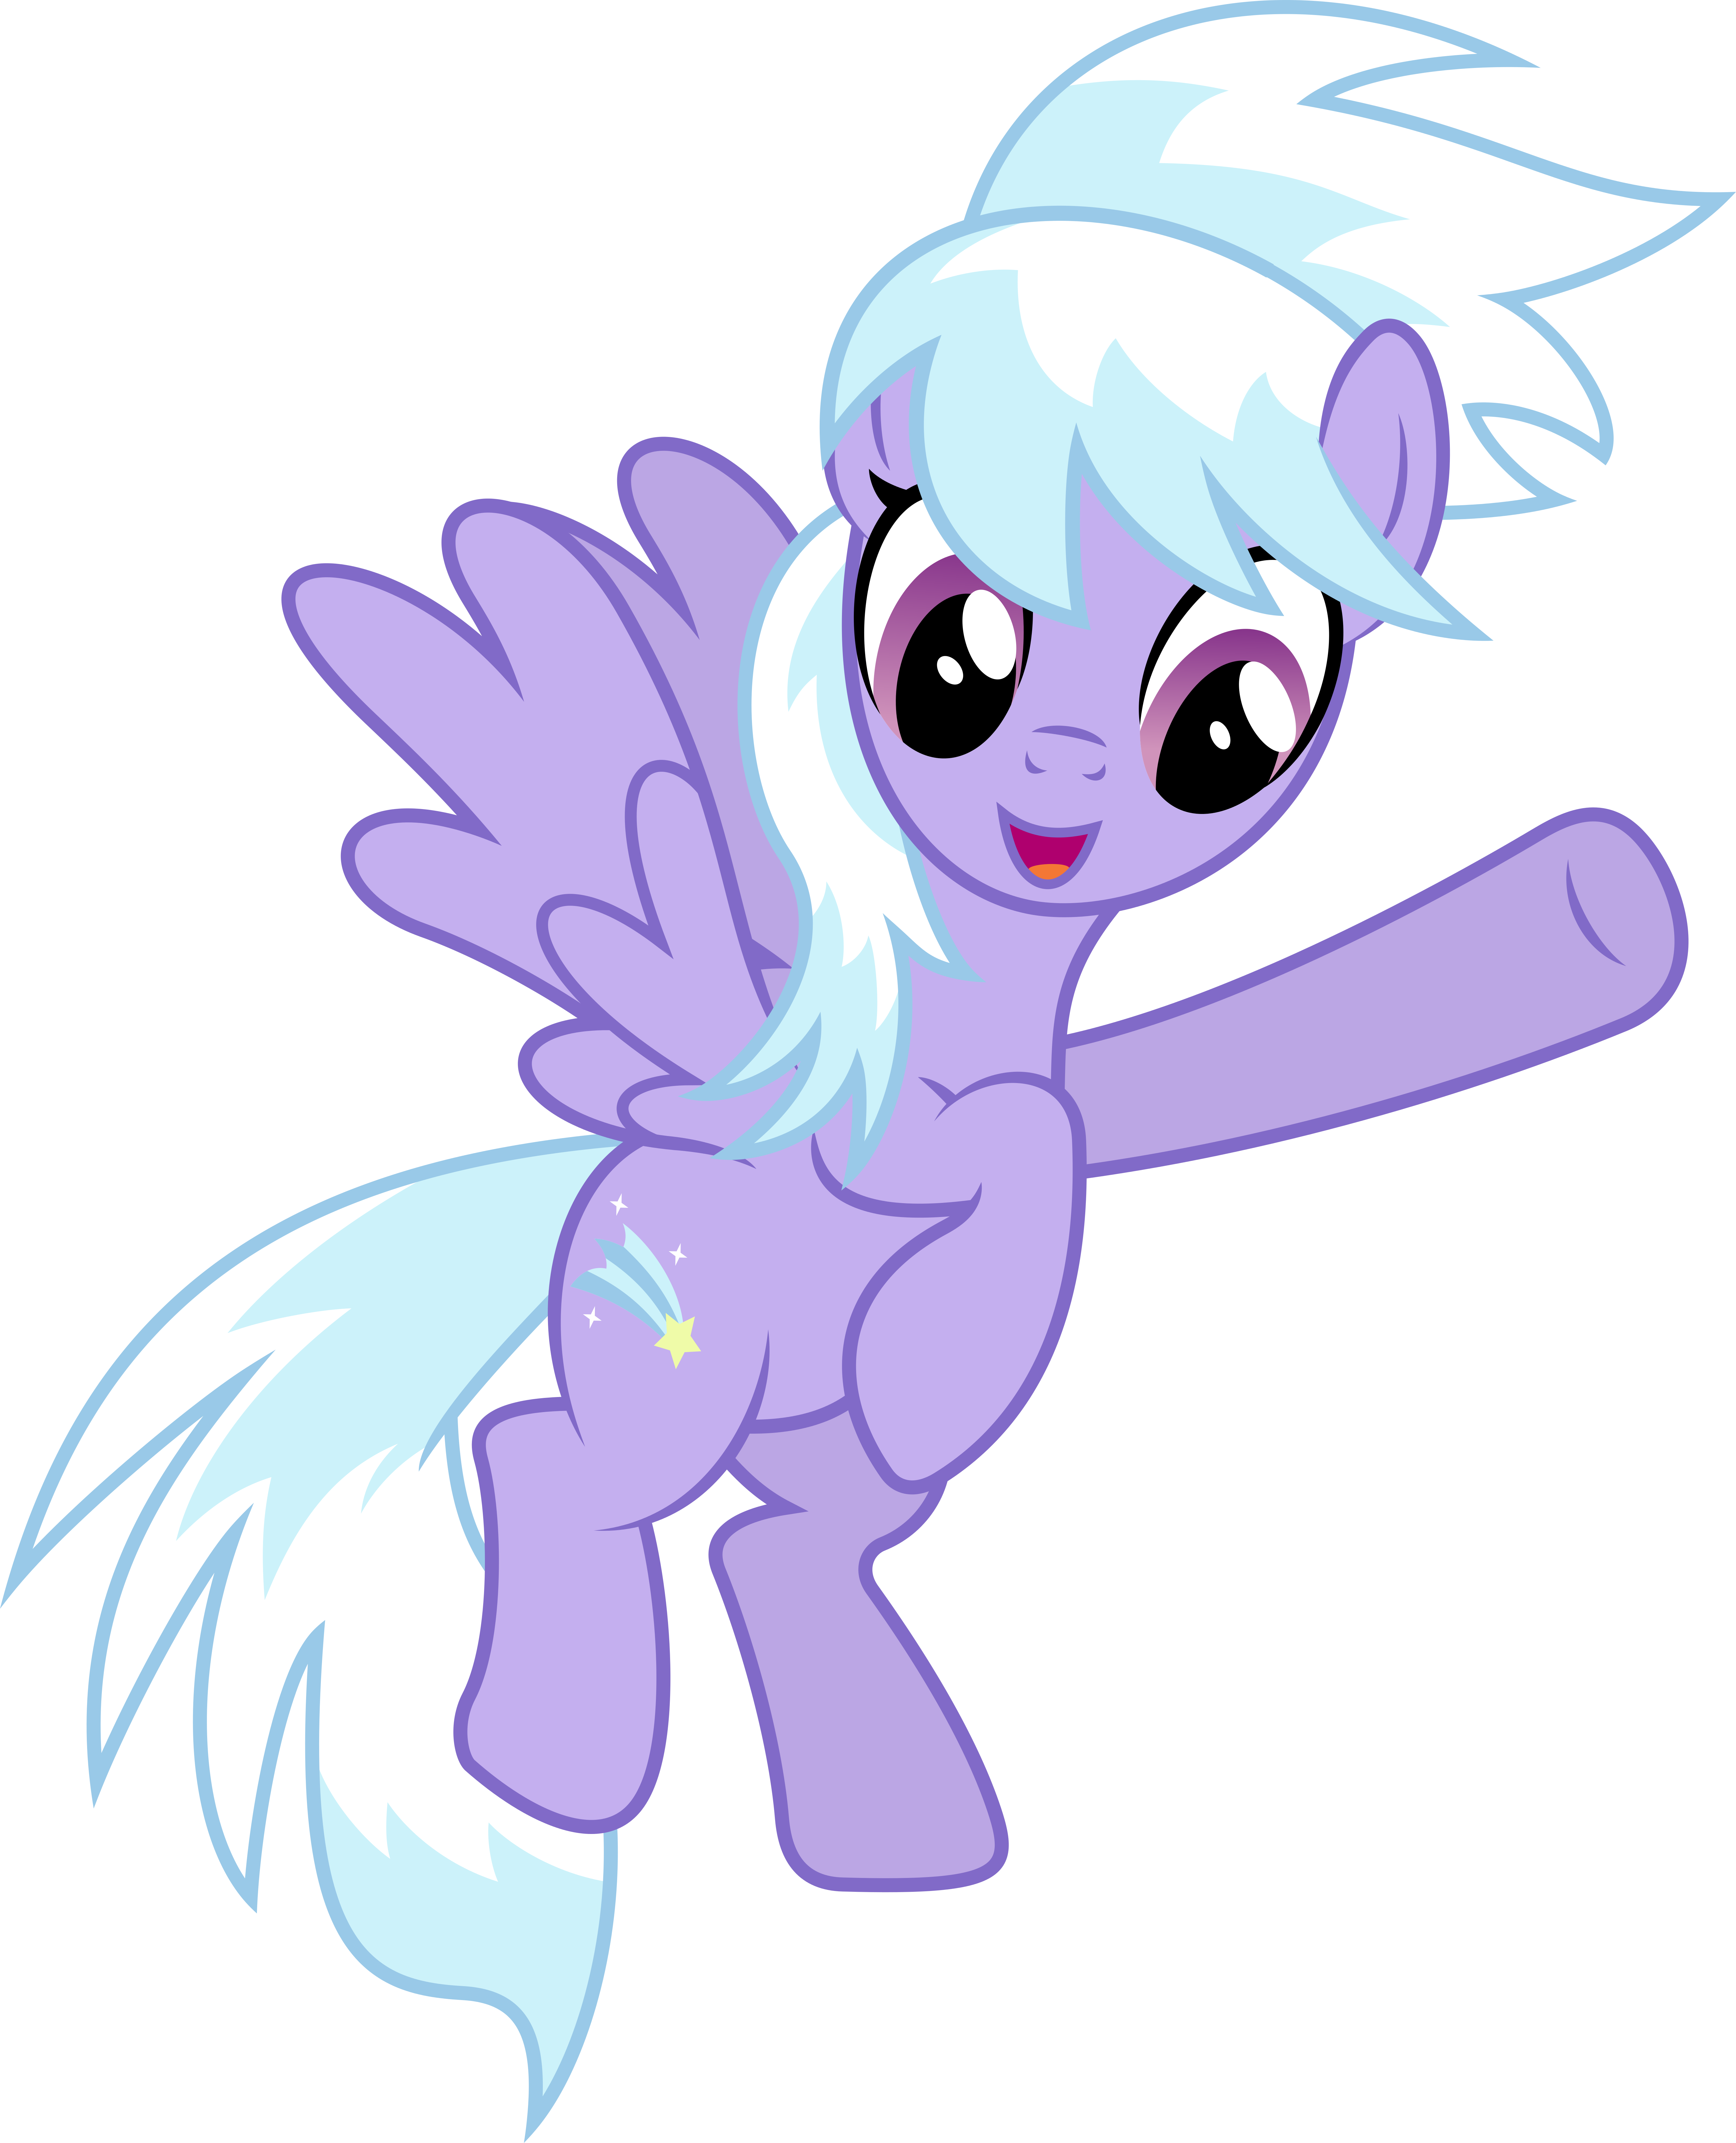 Cloudchaser - My Little Pony Friendship is Magic Wiki